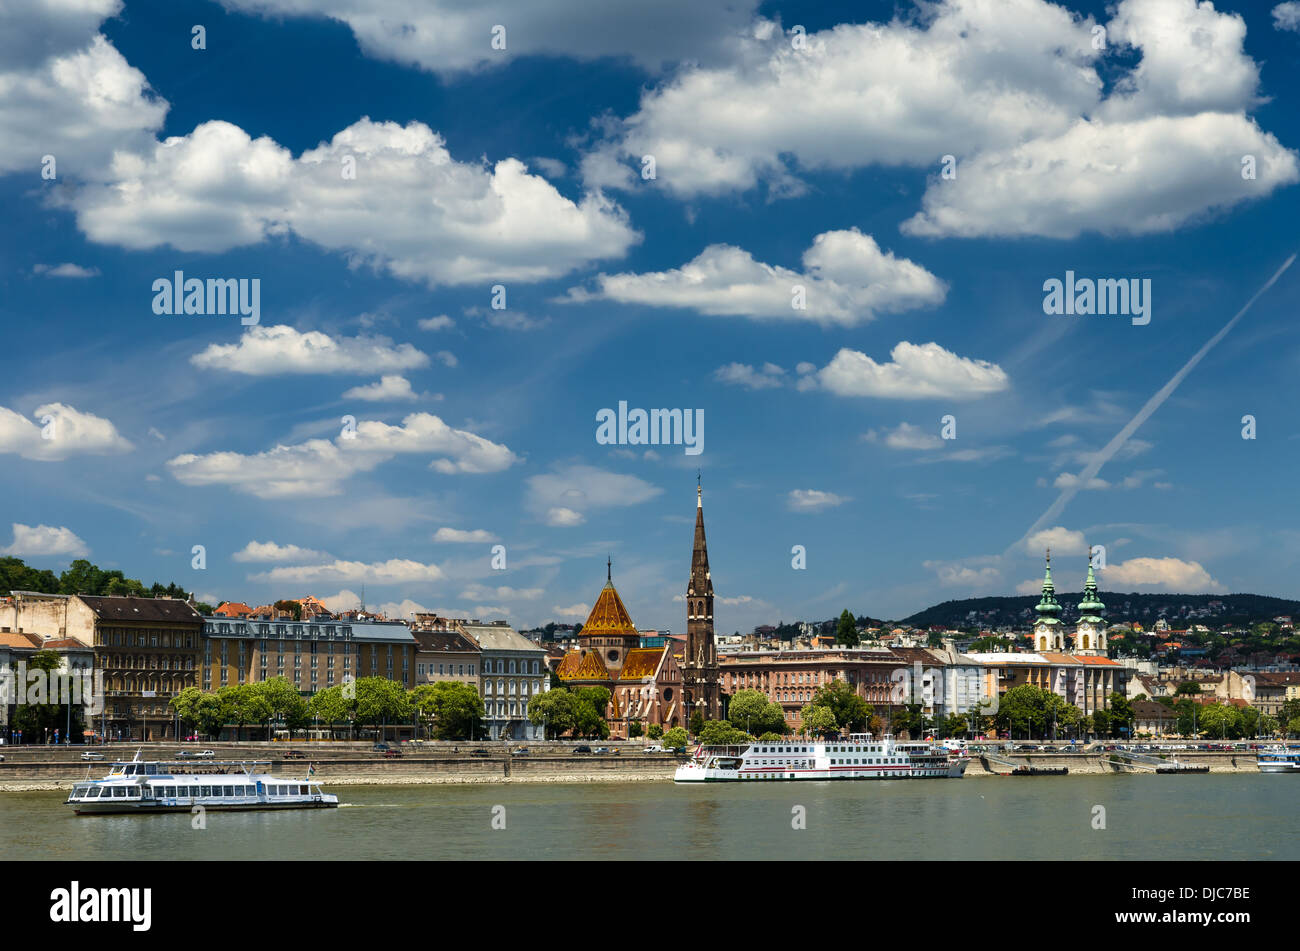 Castle Hill Buda district and Danube River in Budapest, capital of Hungary. - Stock Image